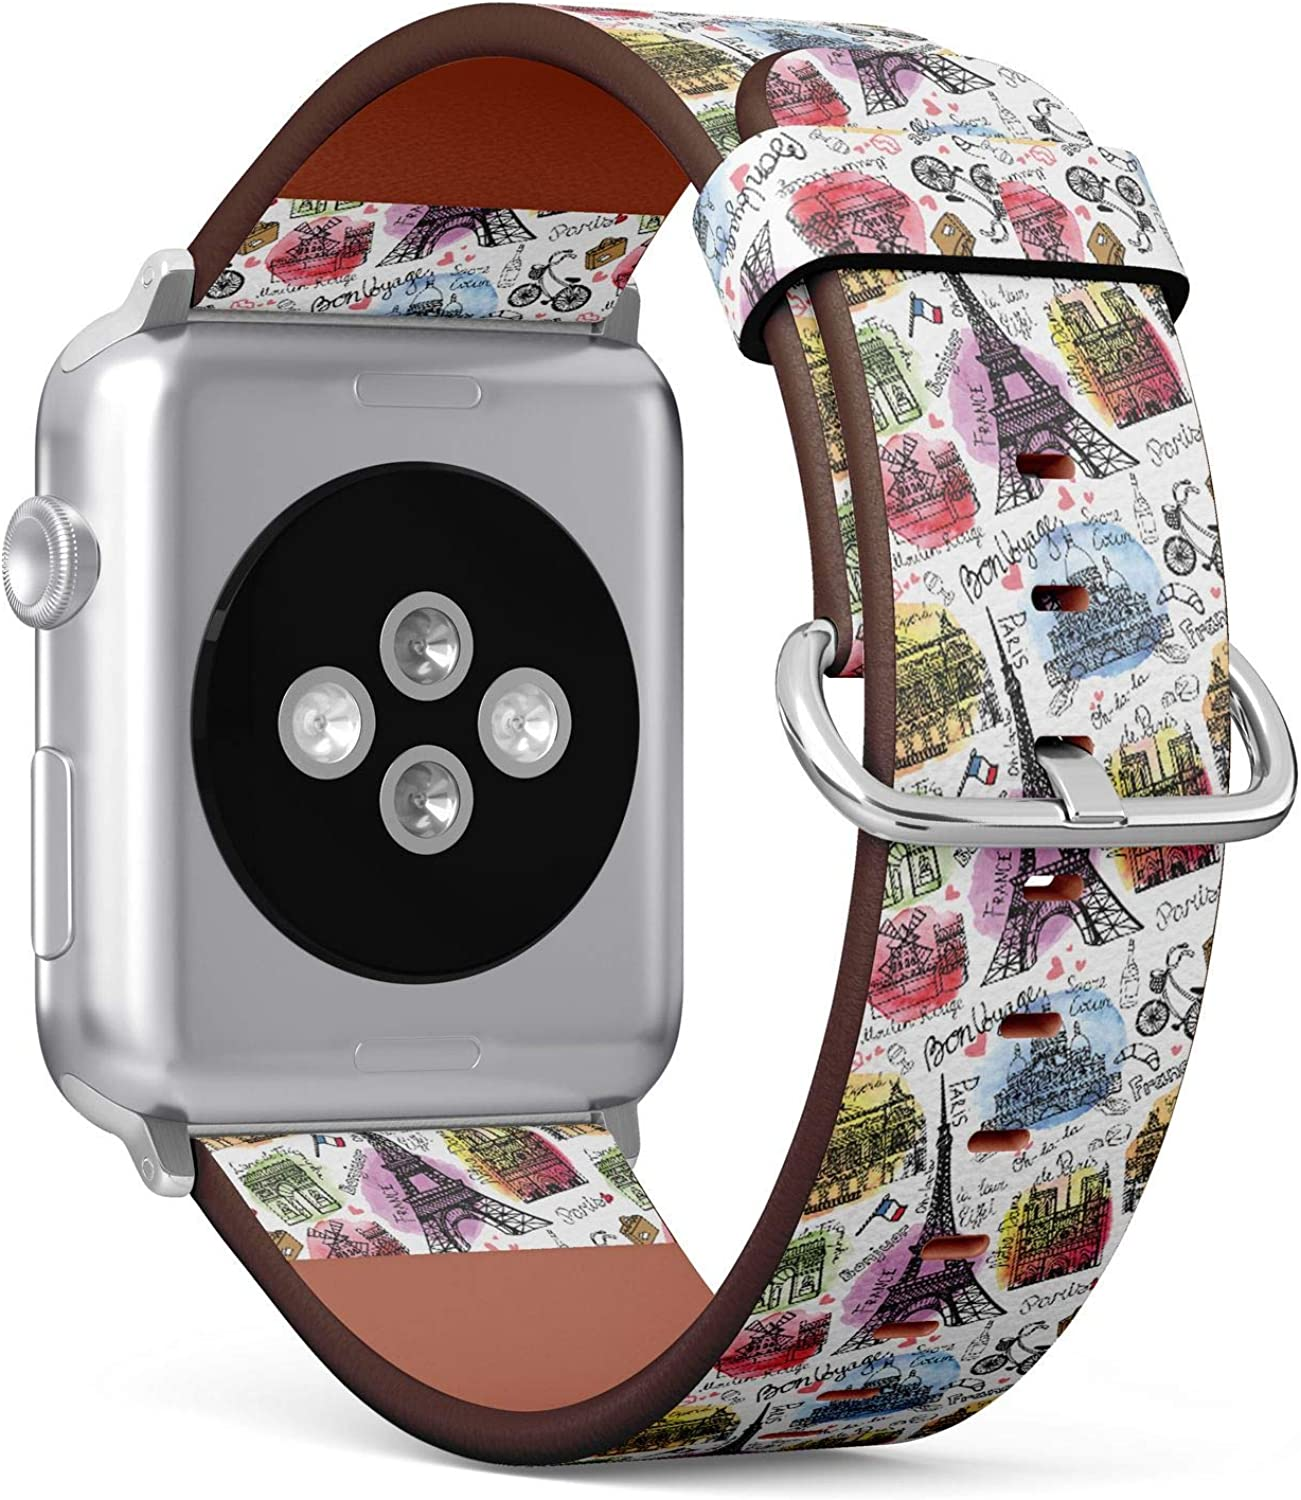 (Watercolor Vintage Doodle of Paris Landmark Notre Dame, Eiffel Tower) Patterned Leather Wristband Strap for Apple Watch Series 4/3/2/1 gen,Replacement for iWatch 38mm / 40mm Bands